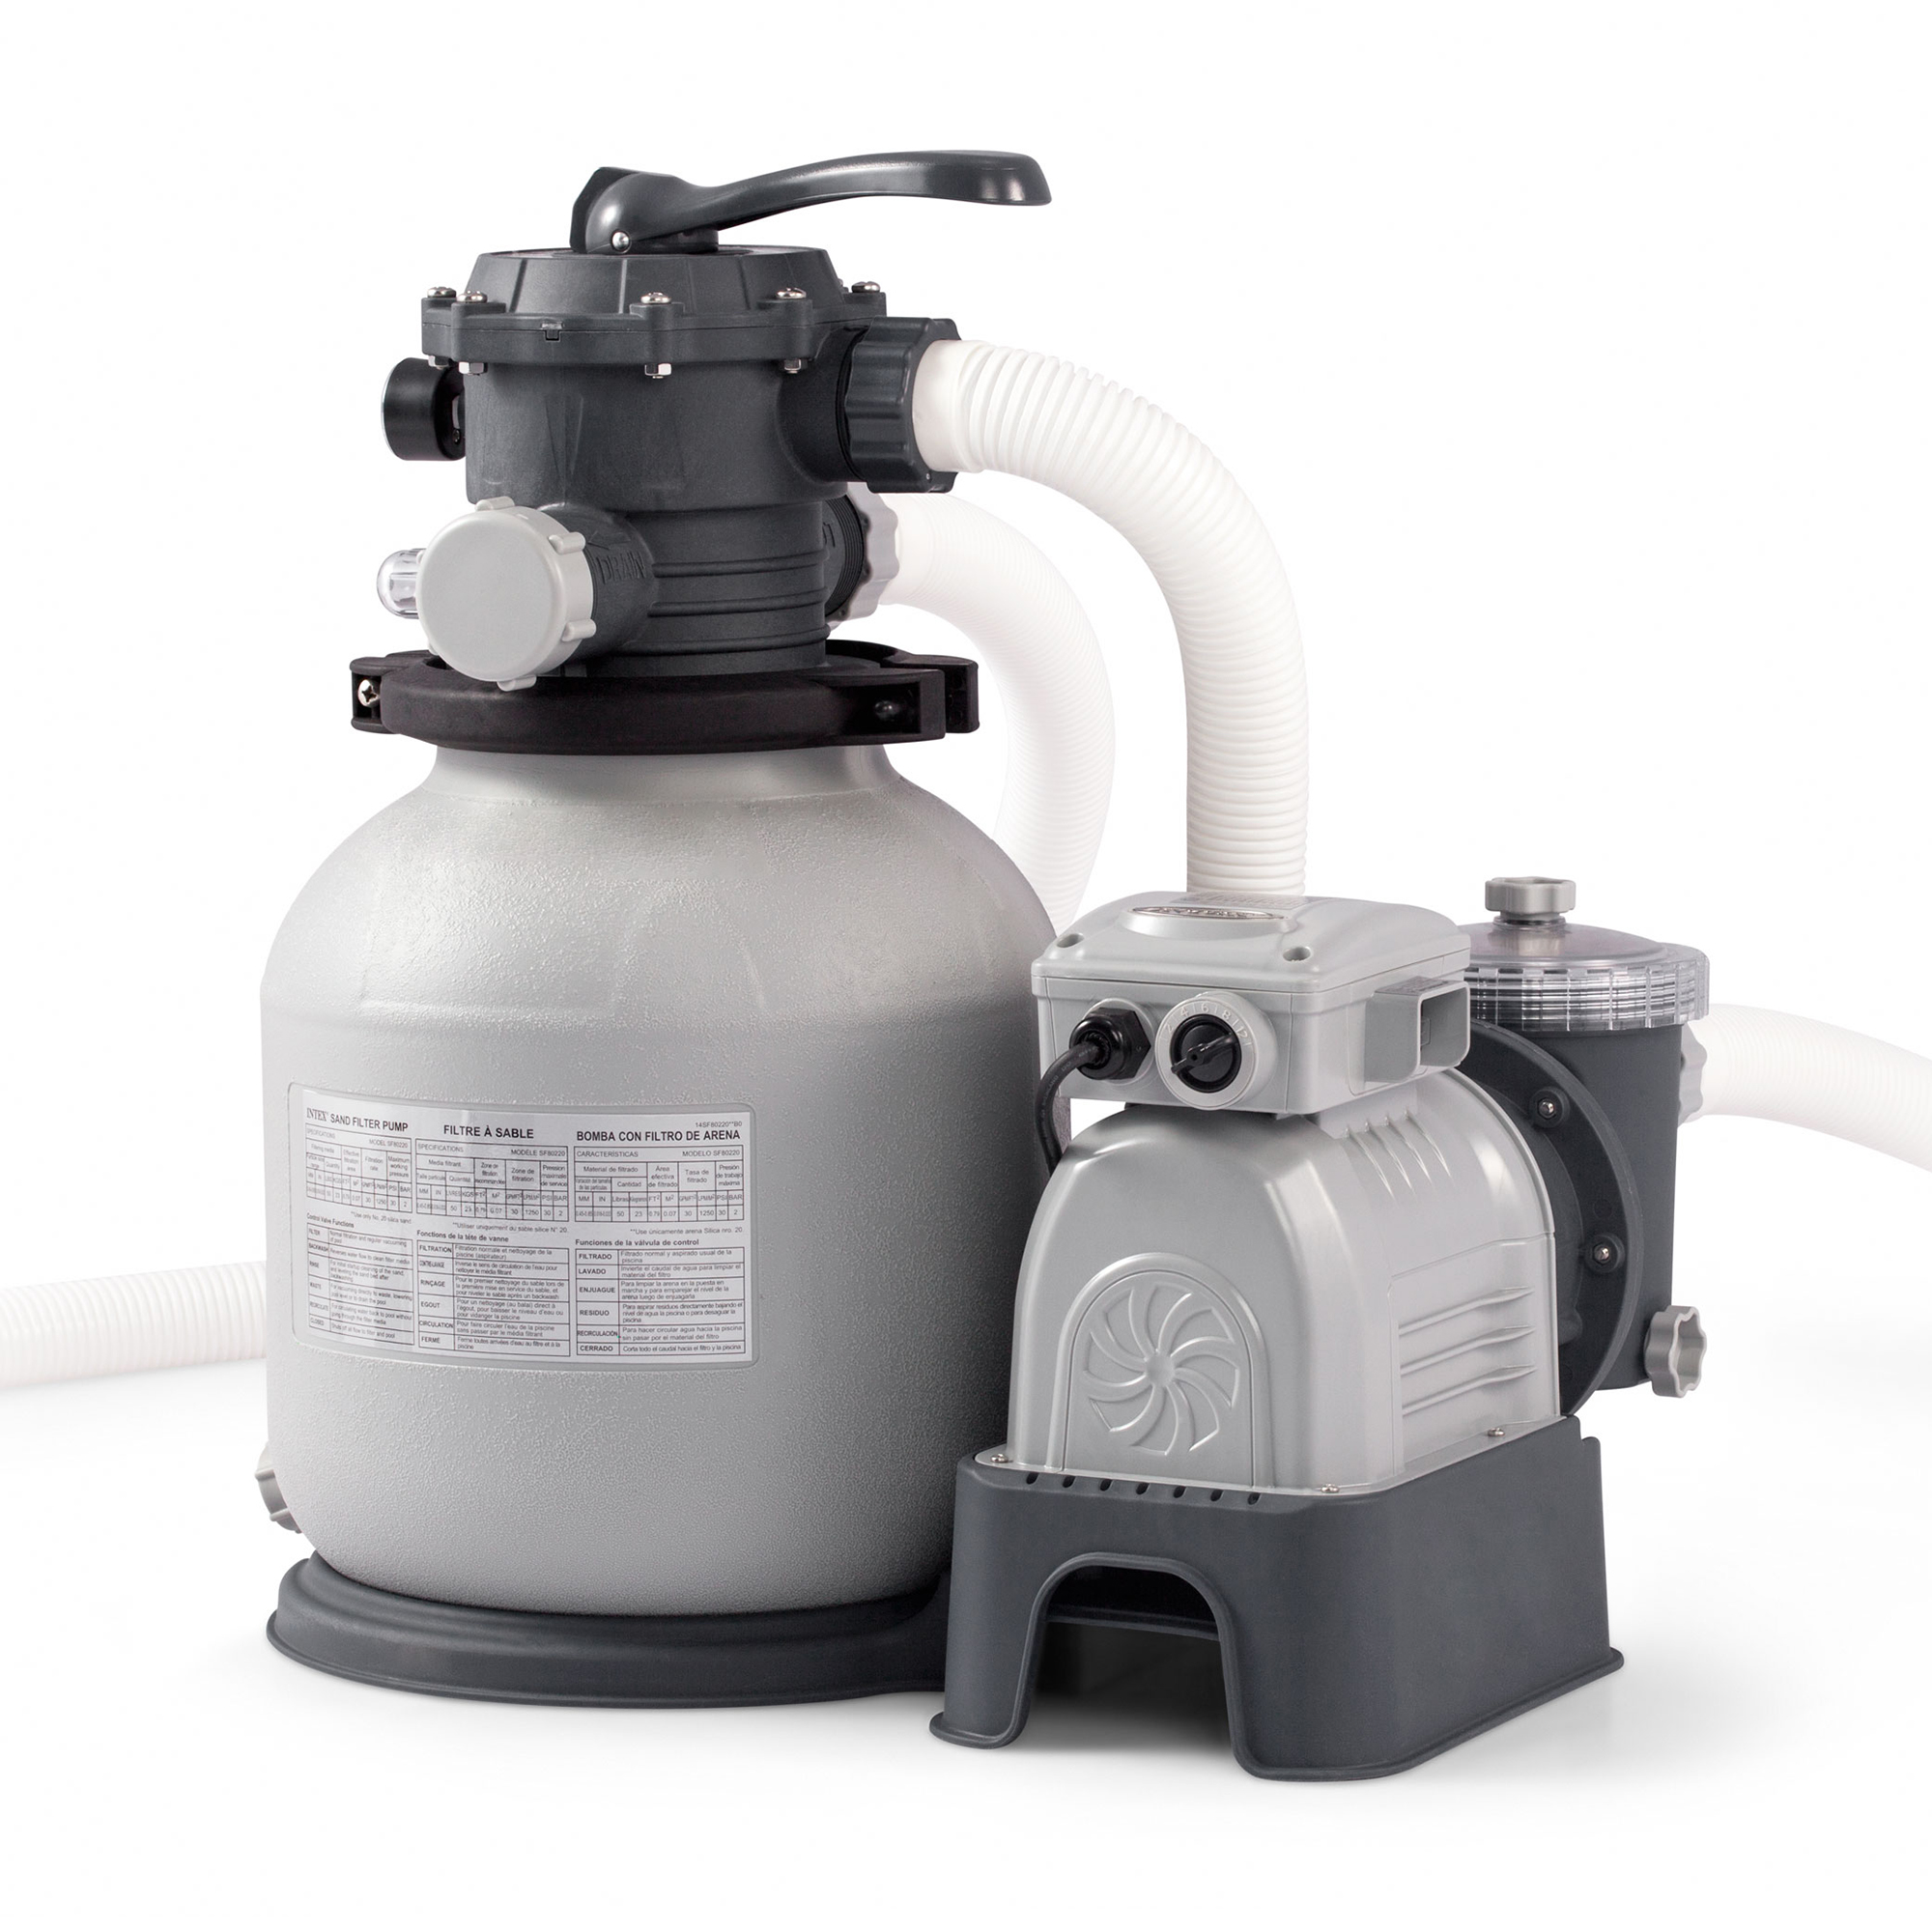 Details about Intex 2100 GPH Krystal Clear Sand Filter Above Ground  Swimming Pool Pump System